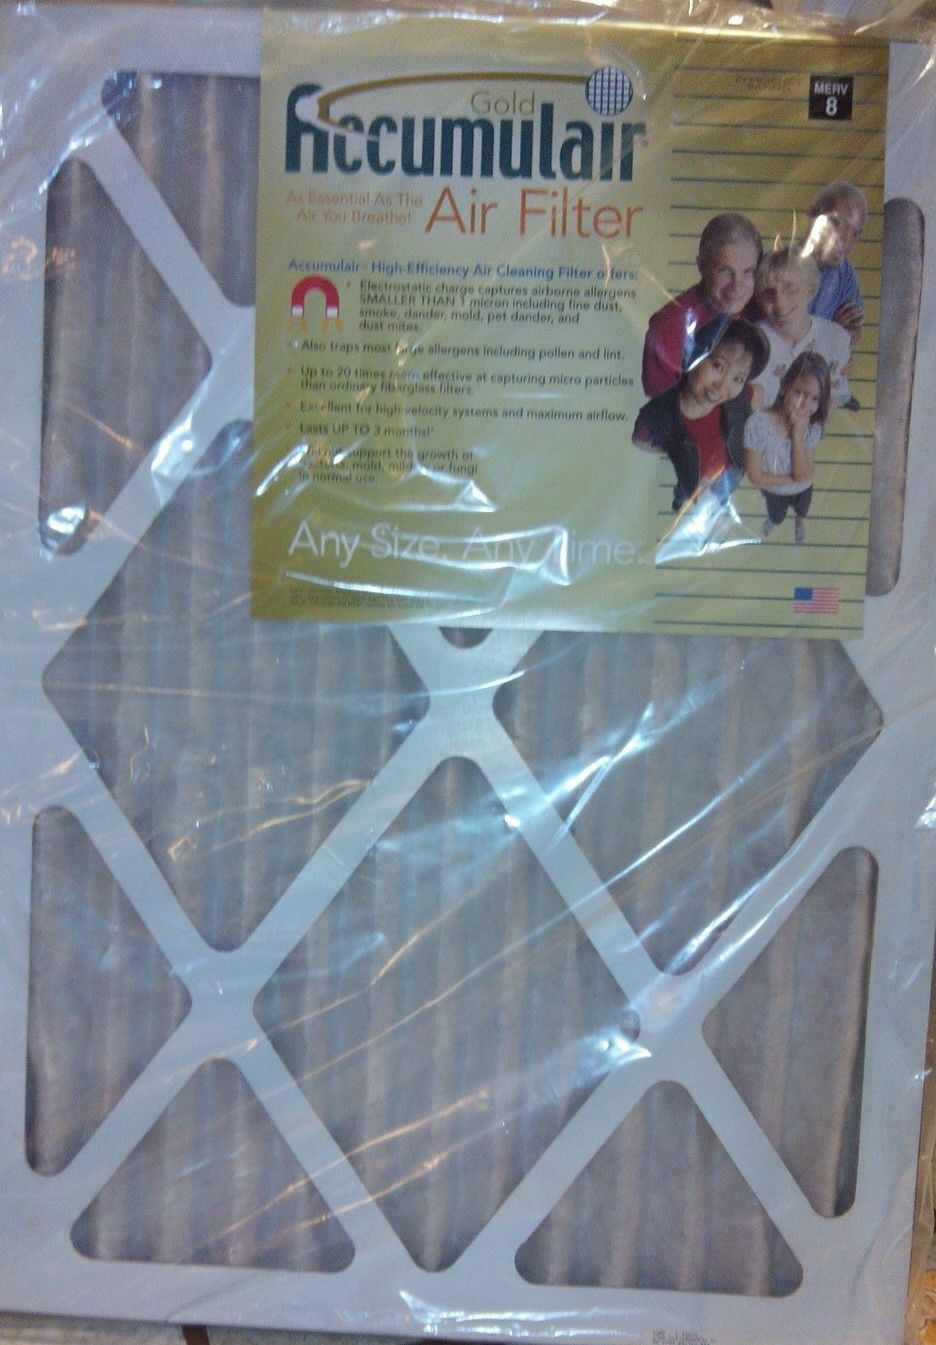 Accumulair Gold NEW Pleated Air Filter 6 or 4 Pack 15/19 x 2